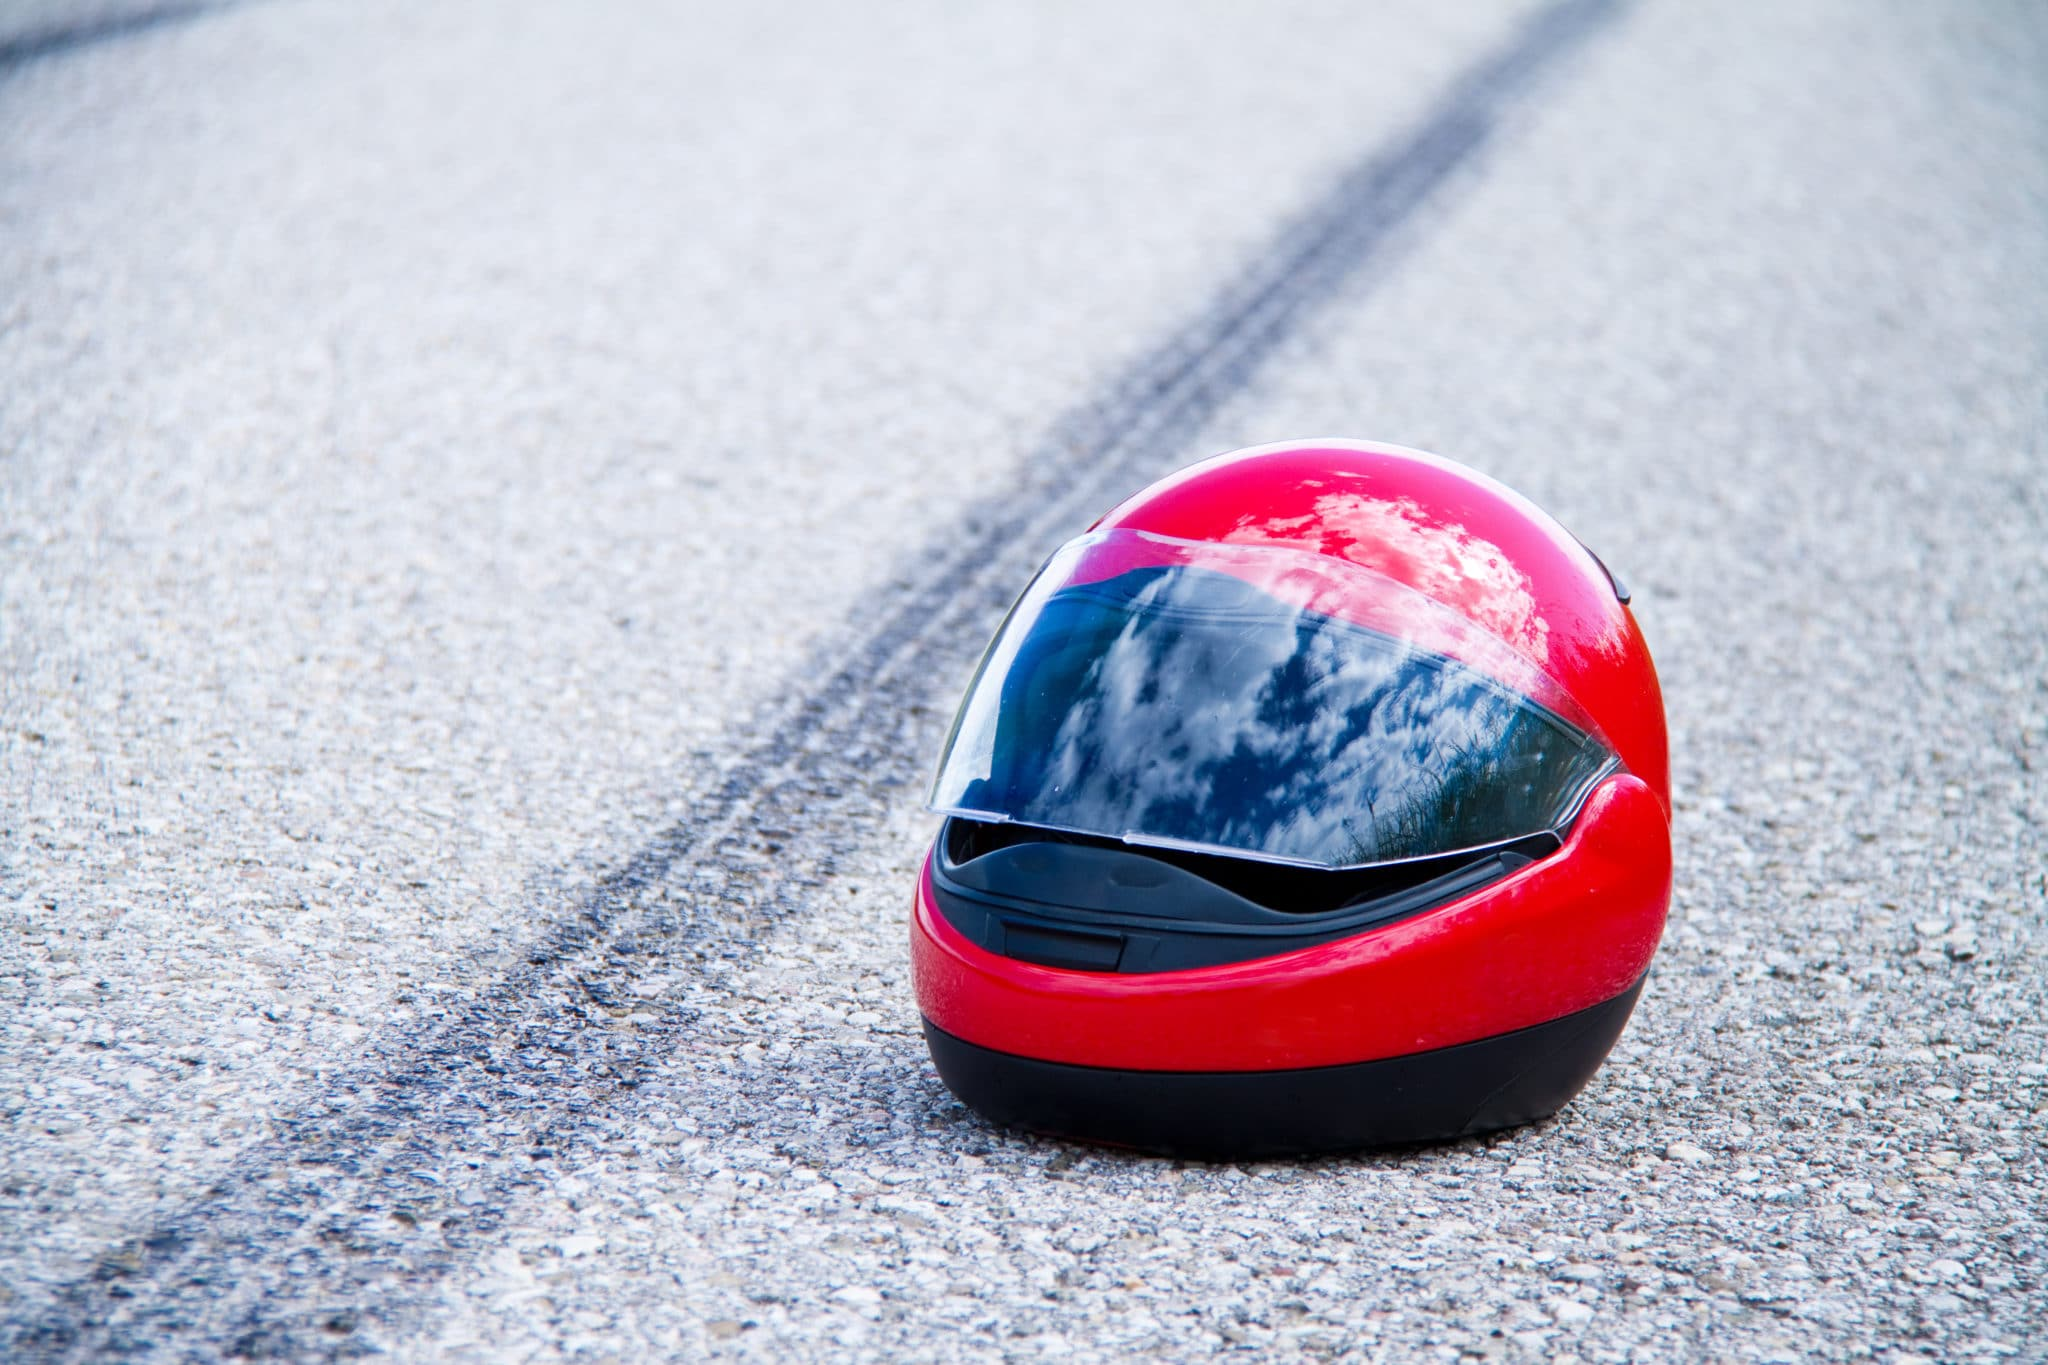 What To Tell Lawyer After Motorcycle Accident